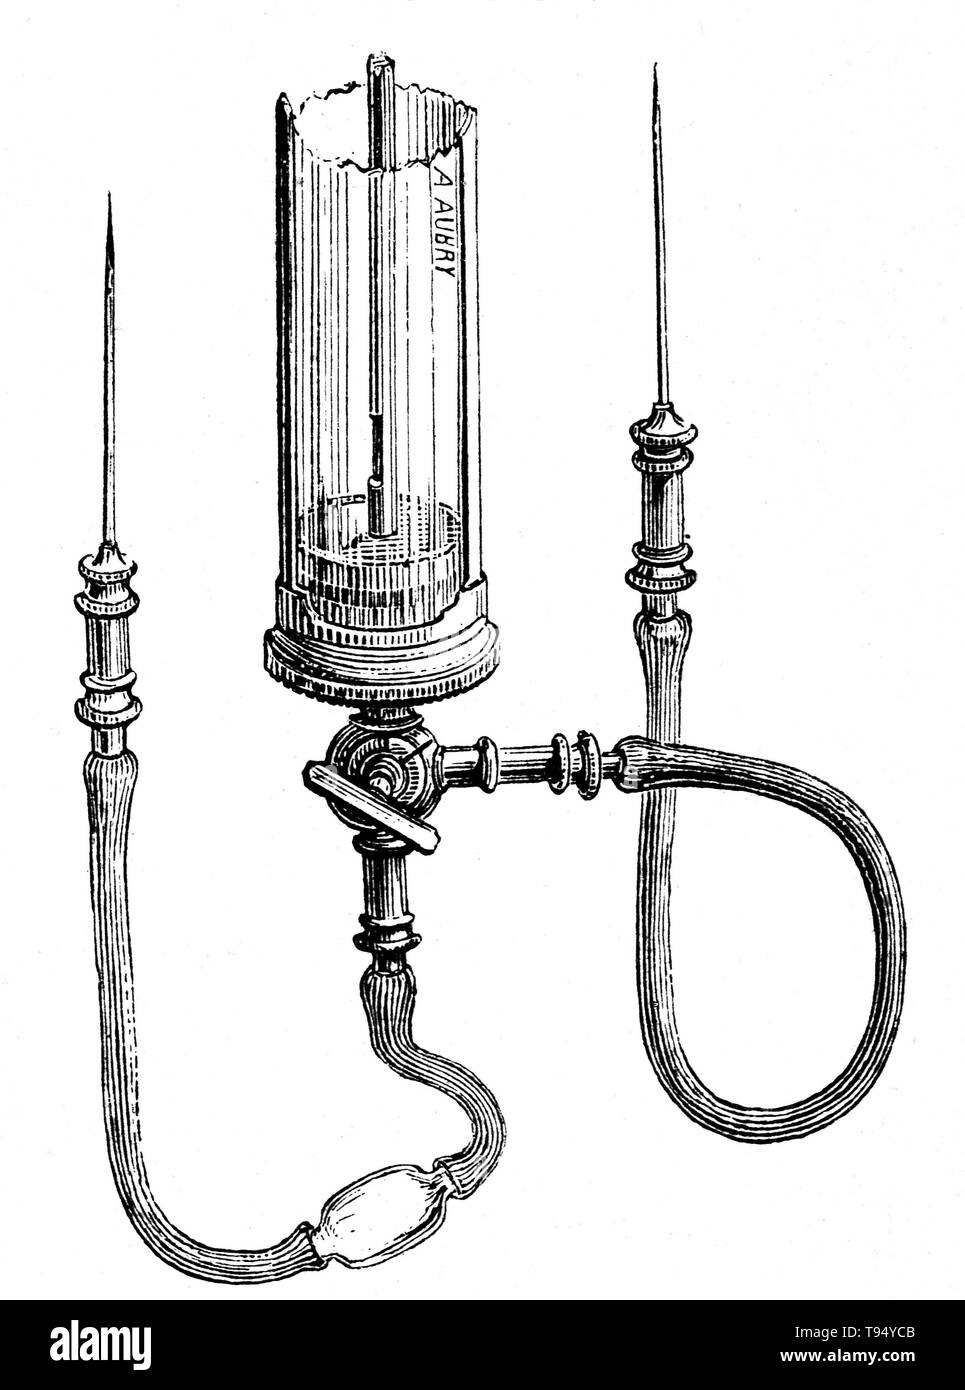 Blood transfusion apparatus by LeBlonds and Collins, from 1876. Beginning with Harvey's experiments with circulation of the blood, research into blood transfusion began in the 17th century, with successful experiments in transfusion between animals. However, successive attempts by physicians to transfuse animal blood into humans gave variable, often fatal, results. Early transfusions between humans were risky and many resulted in the death of the patient. It was not until 1901, when the Austrian Karl Landsteiner discovered human blood groups, that blood transfusions became safer. - Stock Image